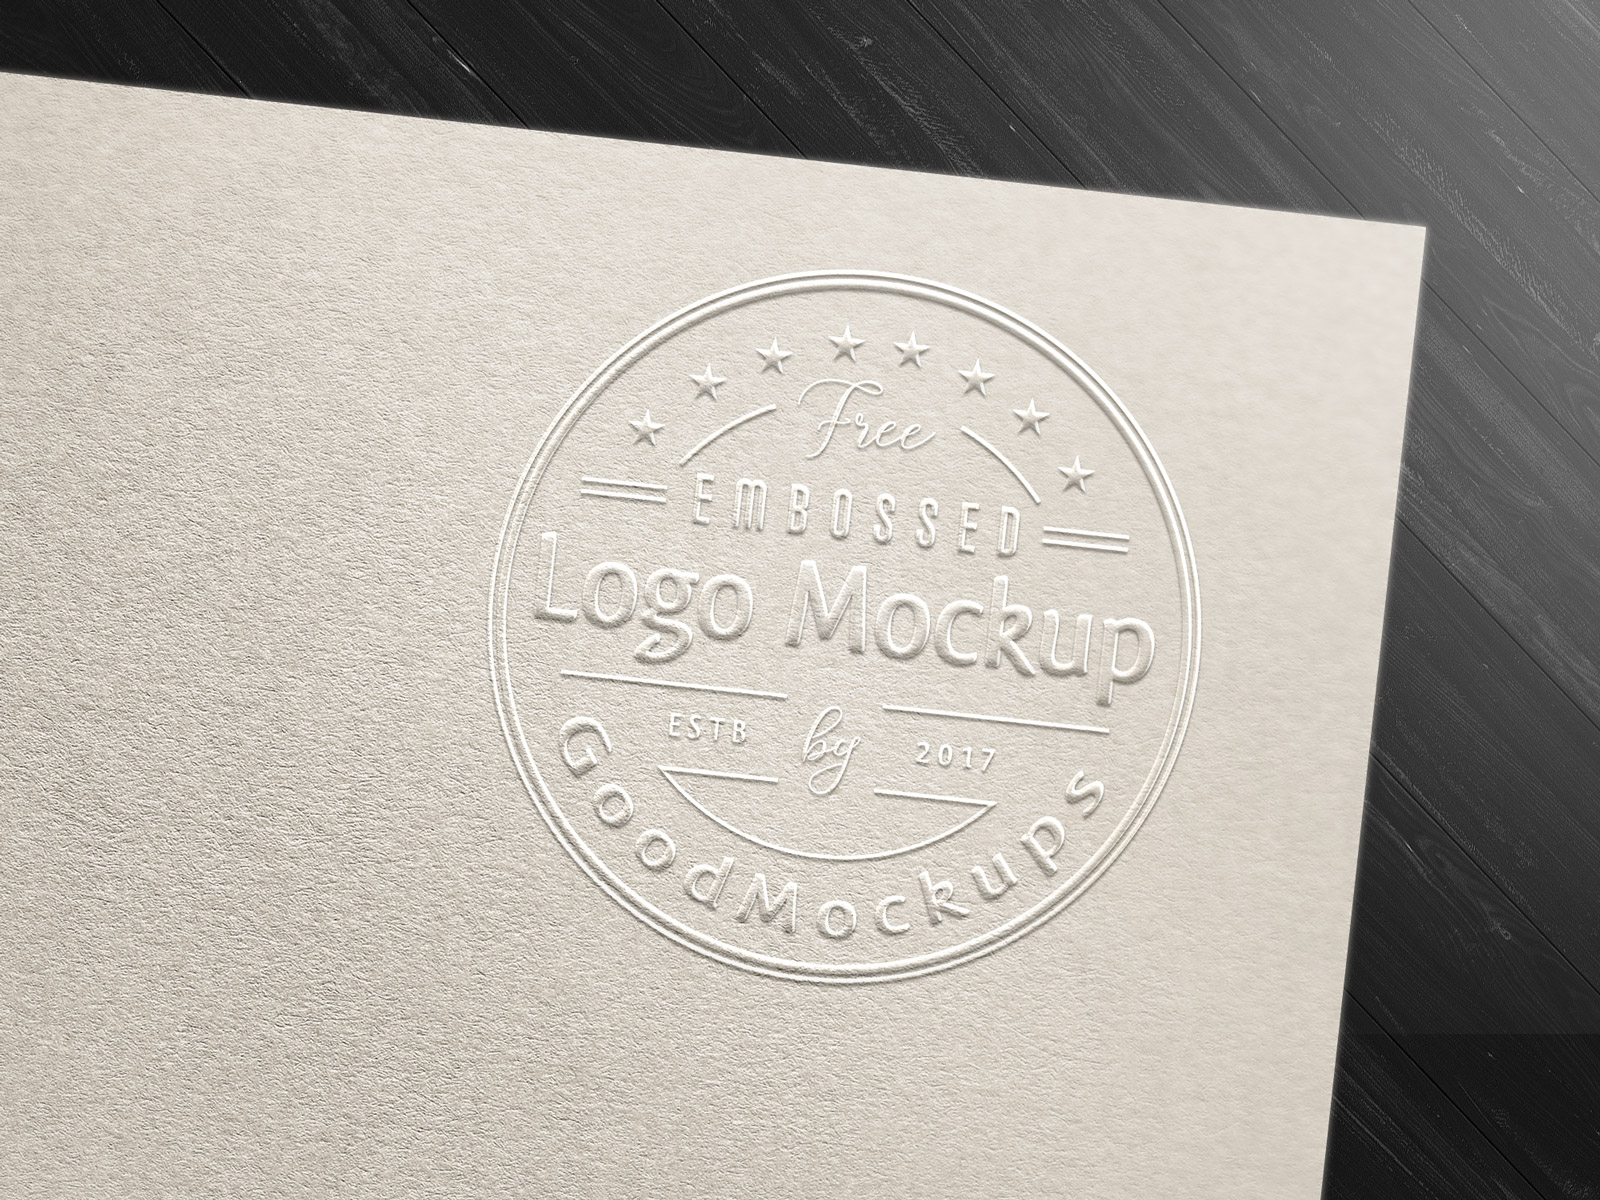 Free-Fancy-Art-Card-Embossed-Logo-Mockup-PSD-2